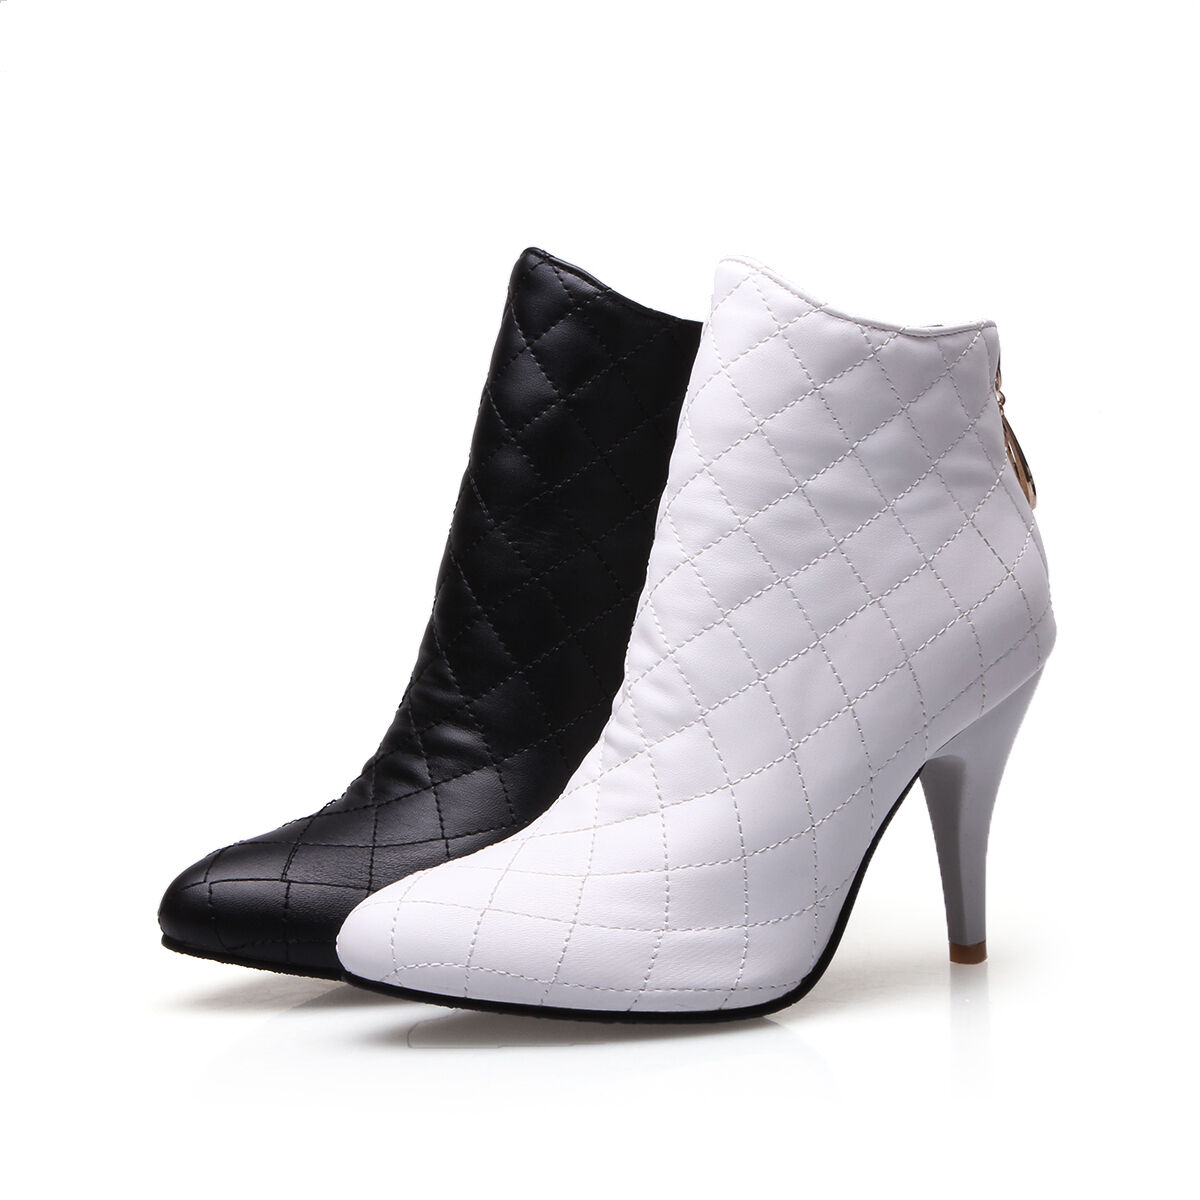 Women's shoes Synthetic Leather High Heels Pumps Zip Up Ankle Boots US Size b120